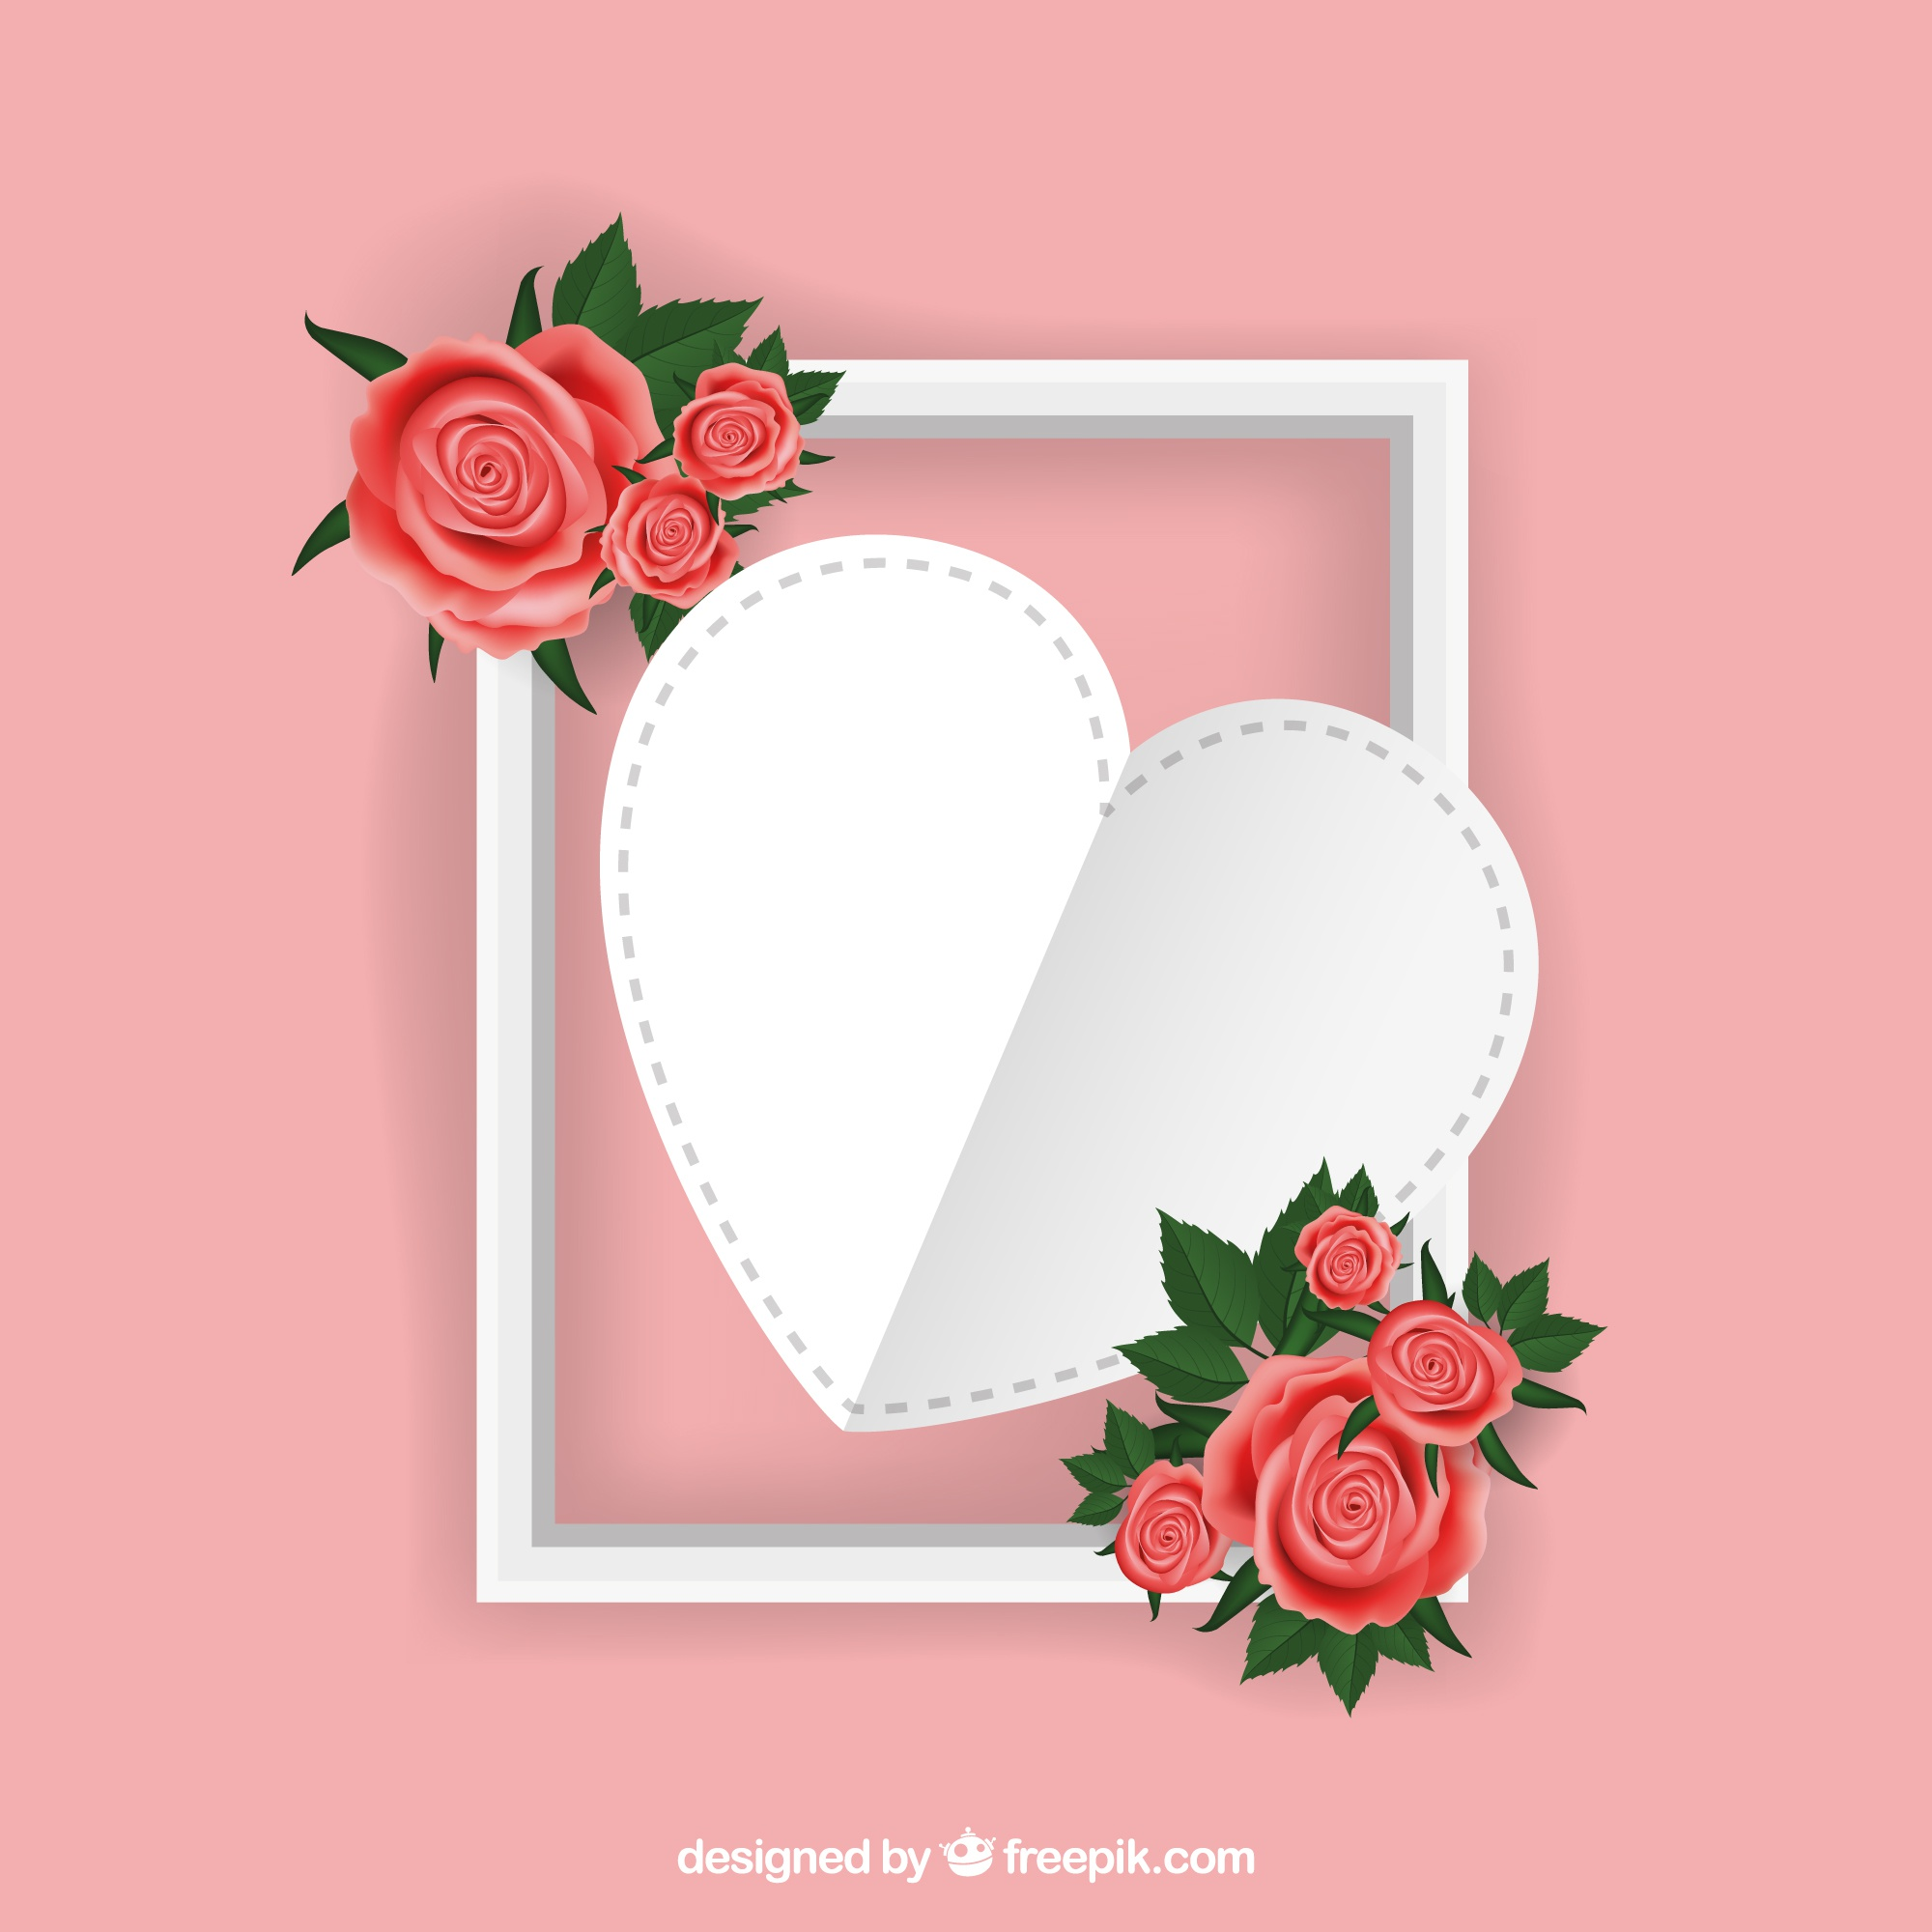 Heart background in a frame with flowers